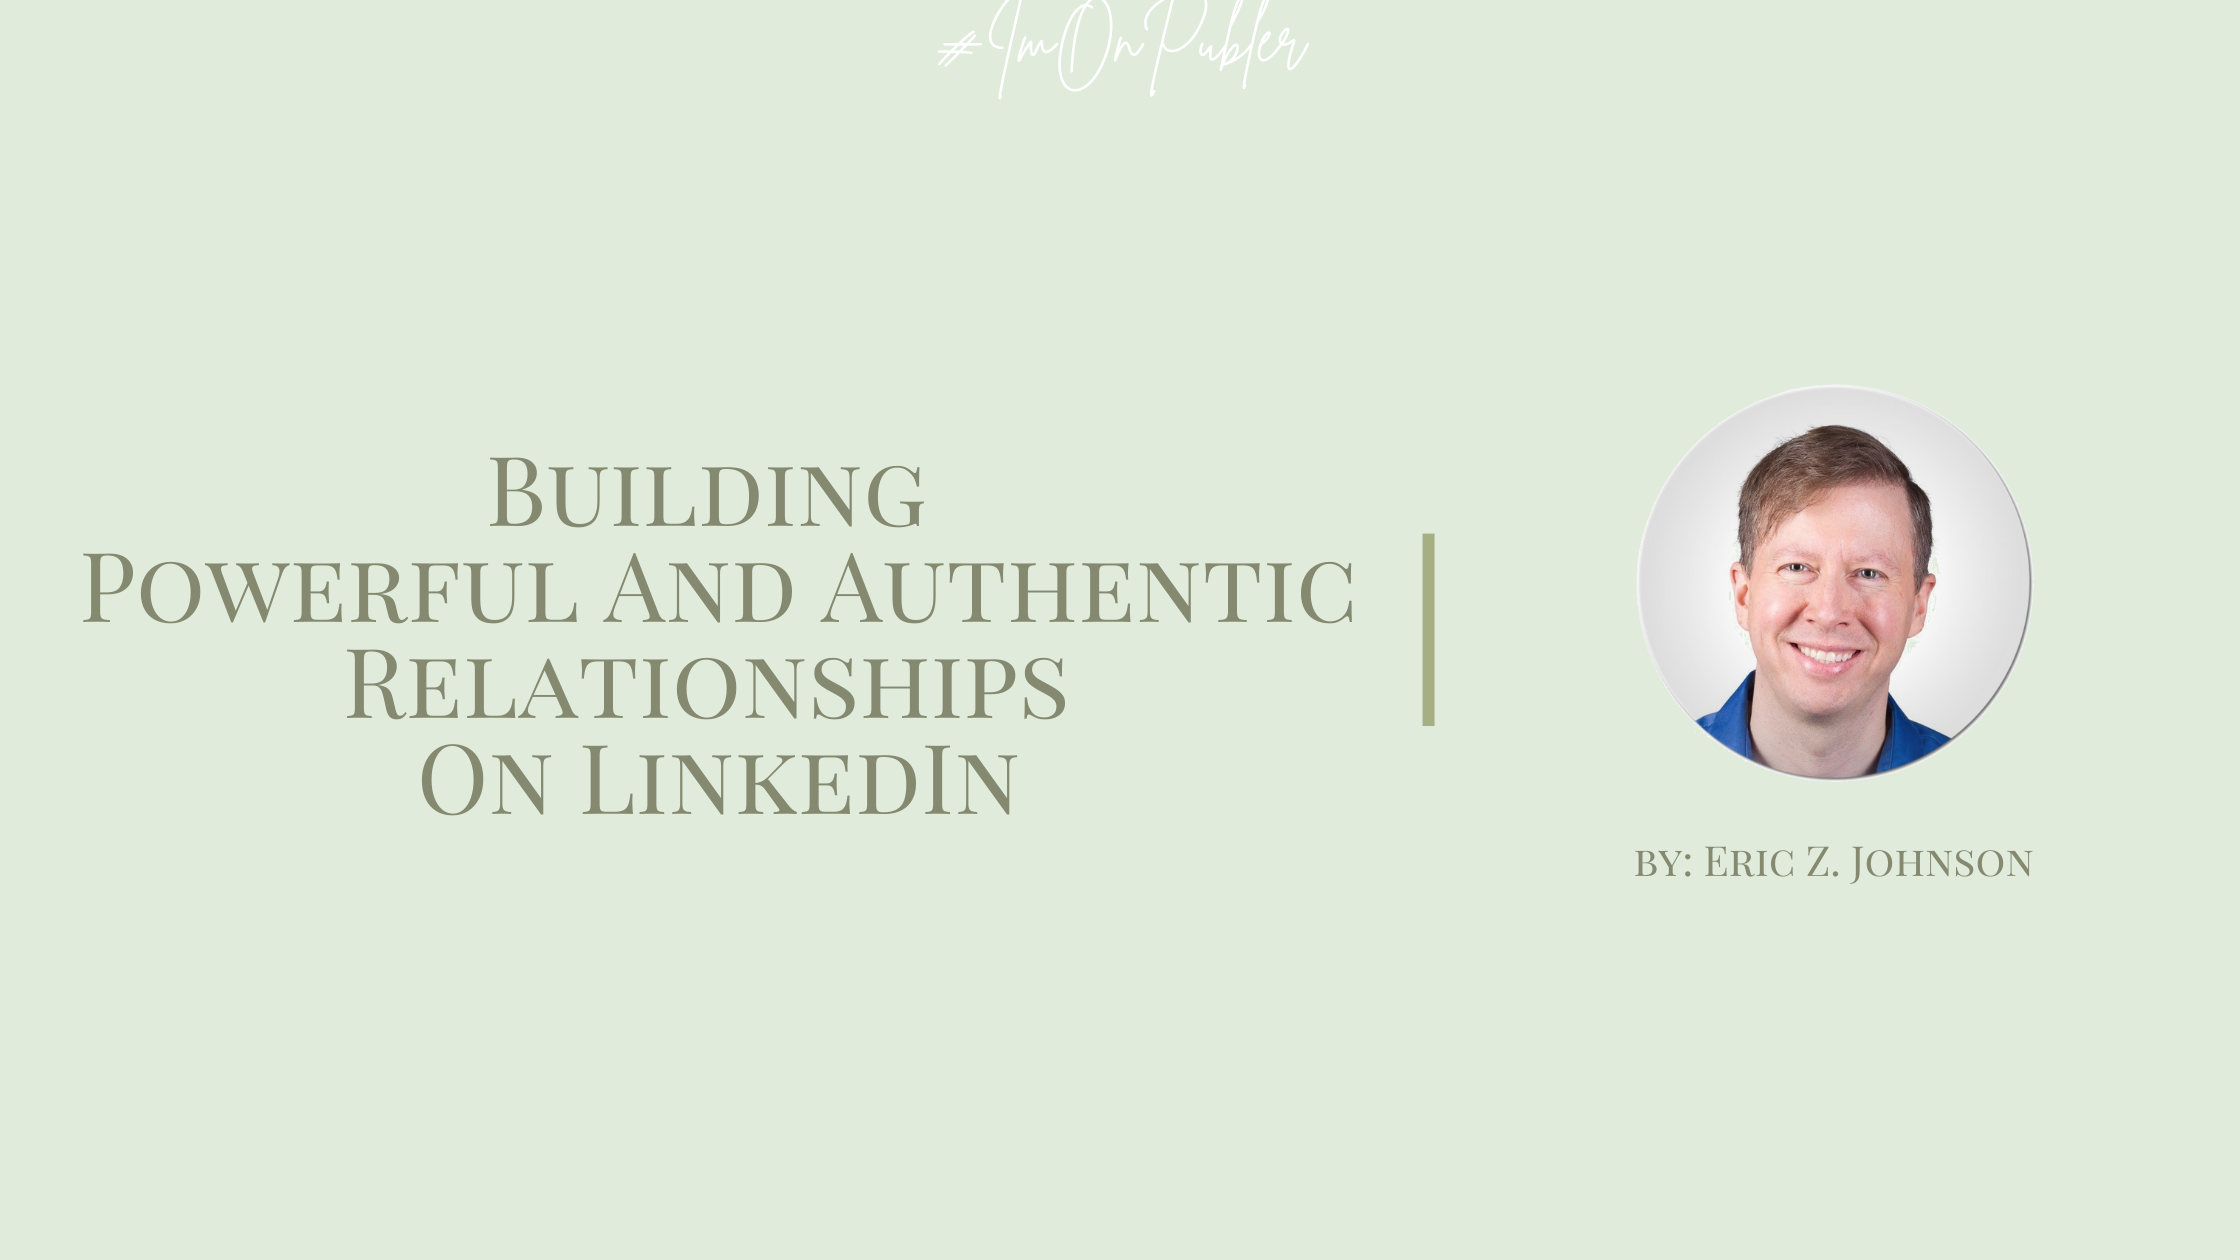 Building Powerful And Authentic Relationships On LinkedIn by Eric Z. Johnson